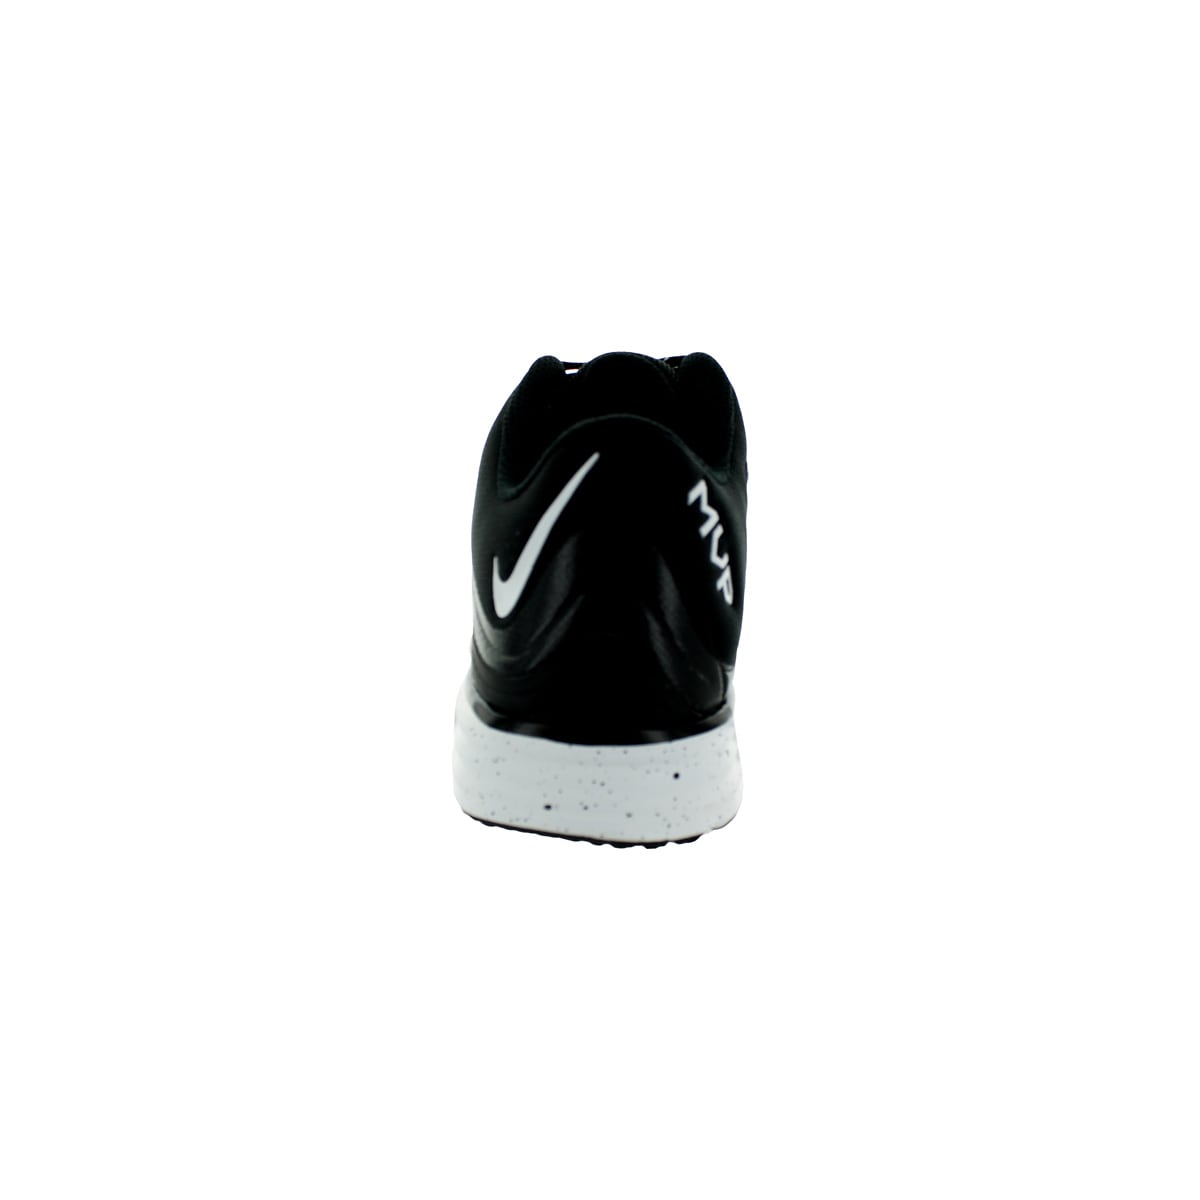 on sale 92dfe 478d1 Nike-Mens-Lunar-Mvp-Pregame-2-Black-White-Training-Shoe -349d42cc-50c1-44ca-b945-8760d86781e1.jpg